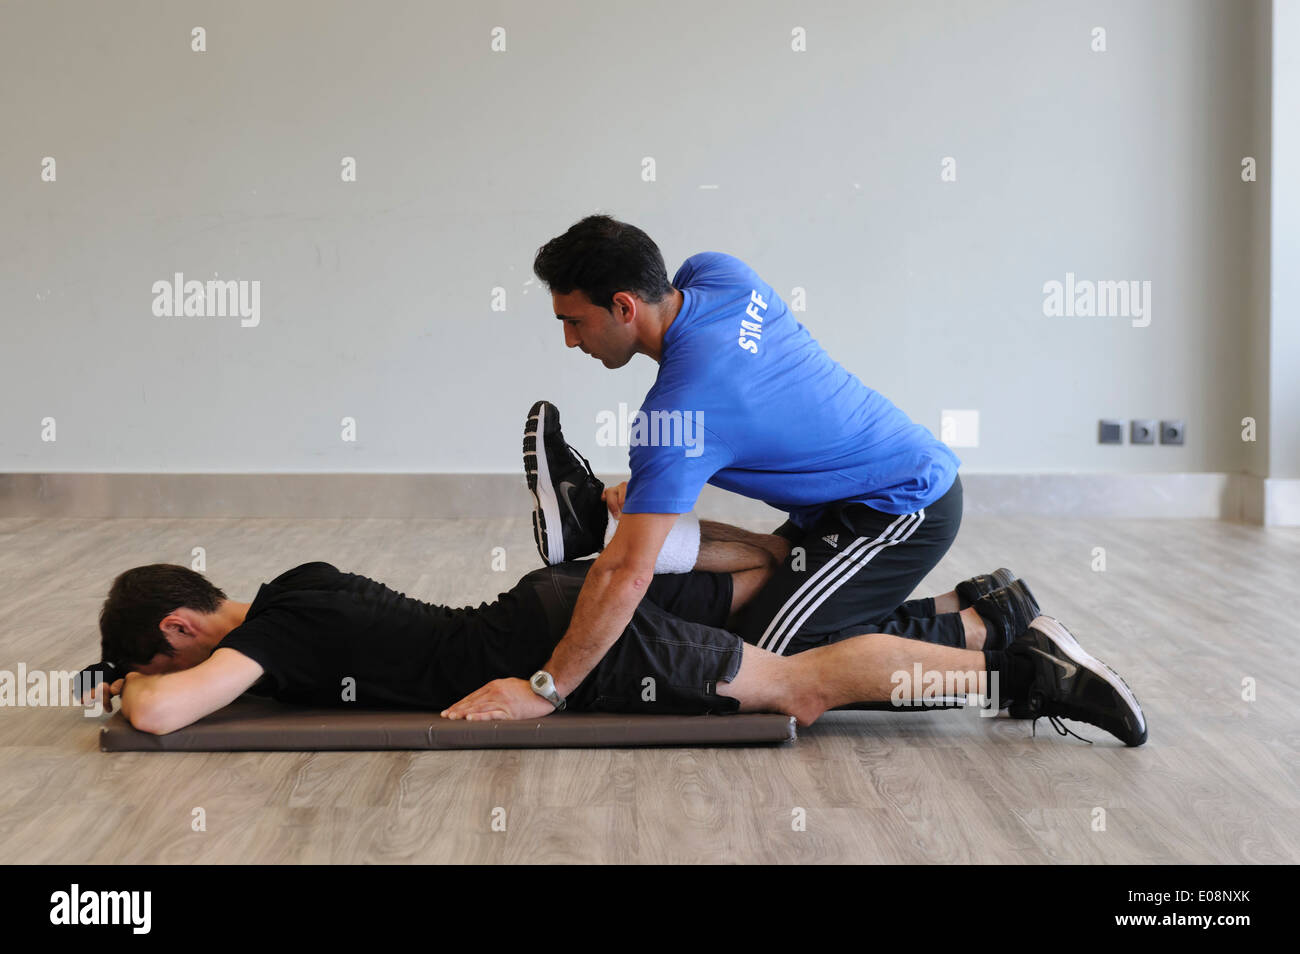 Personal trainer in the gym helping a client do stretching exercises - Stock Image